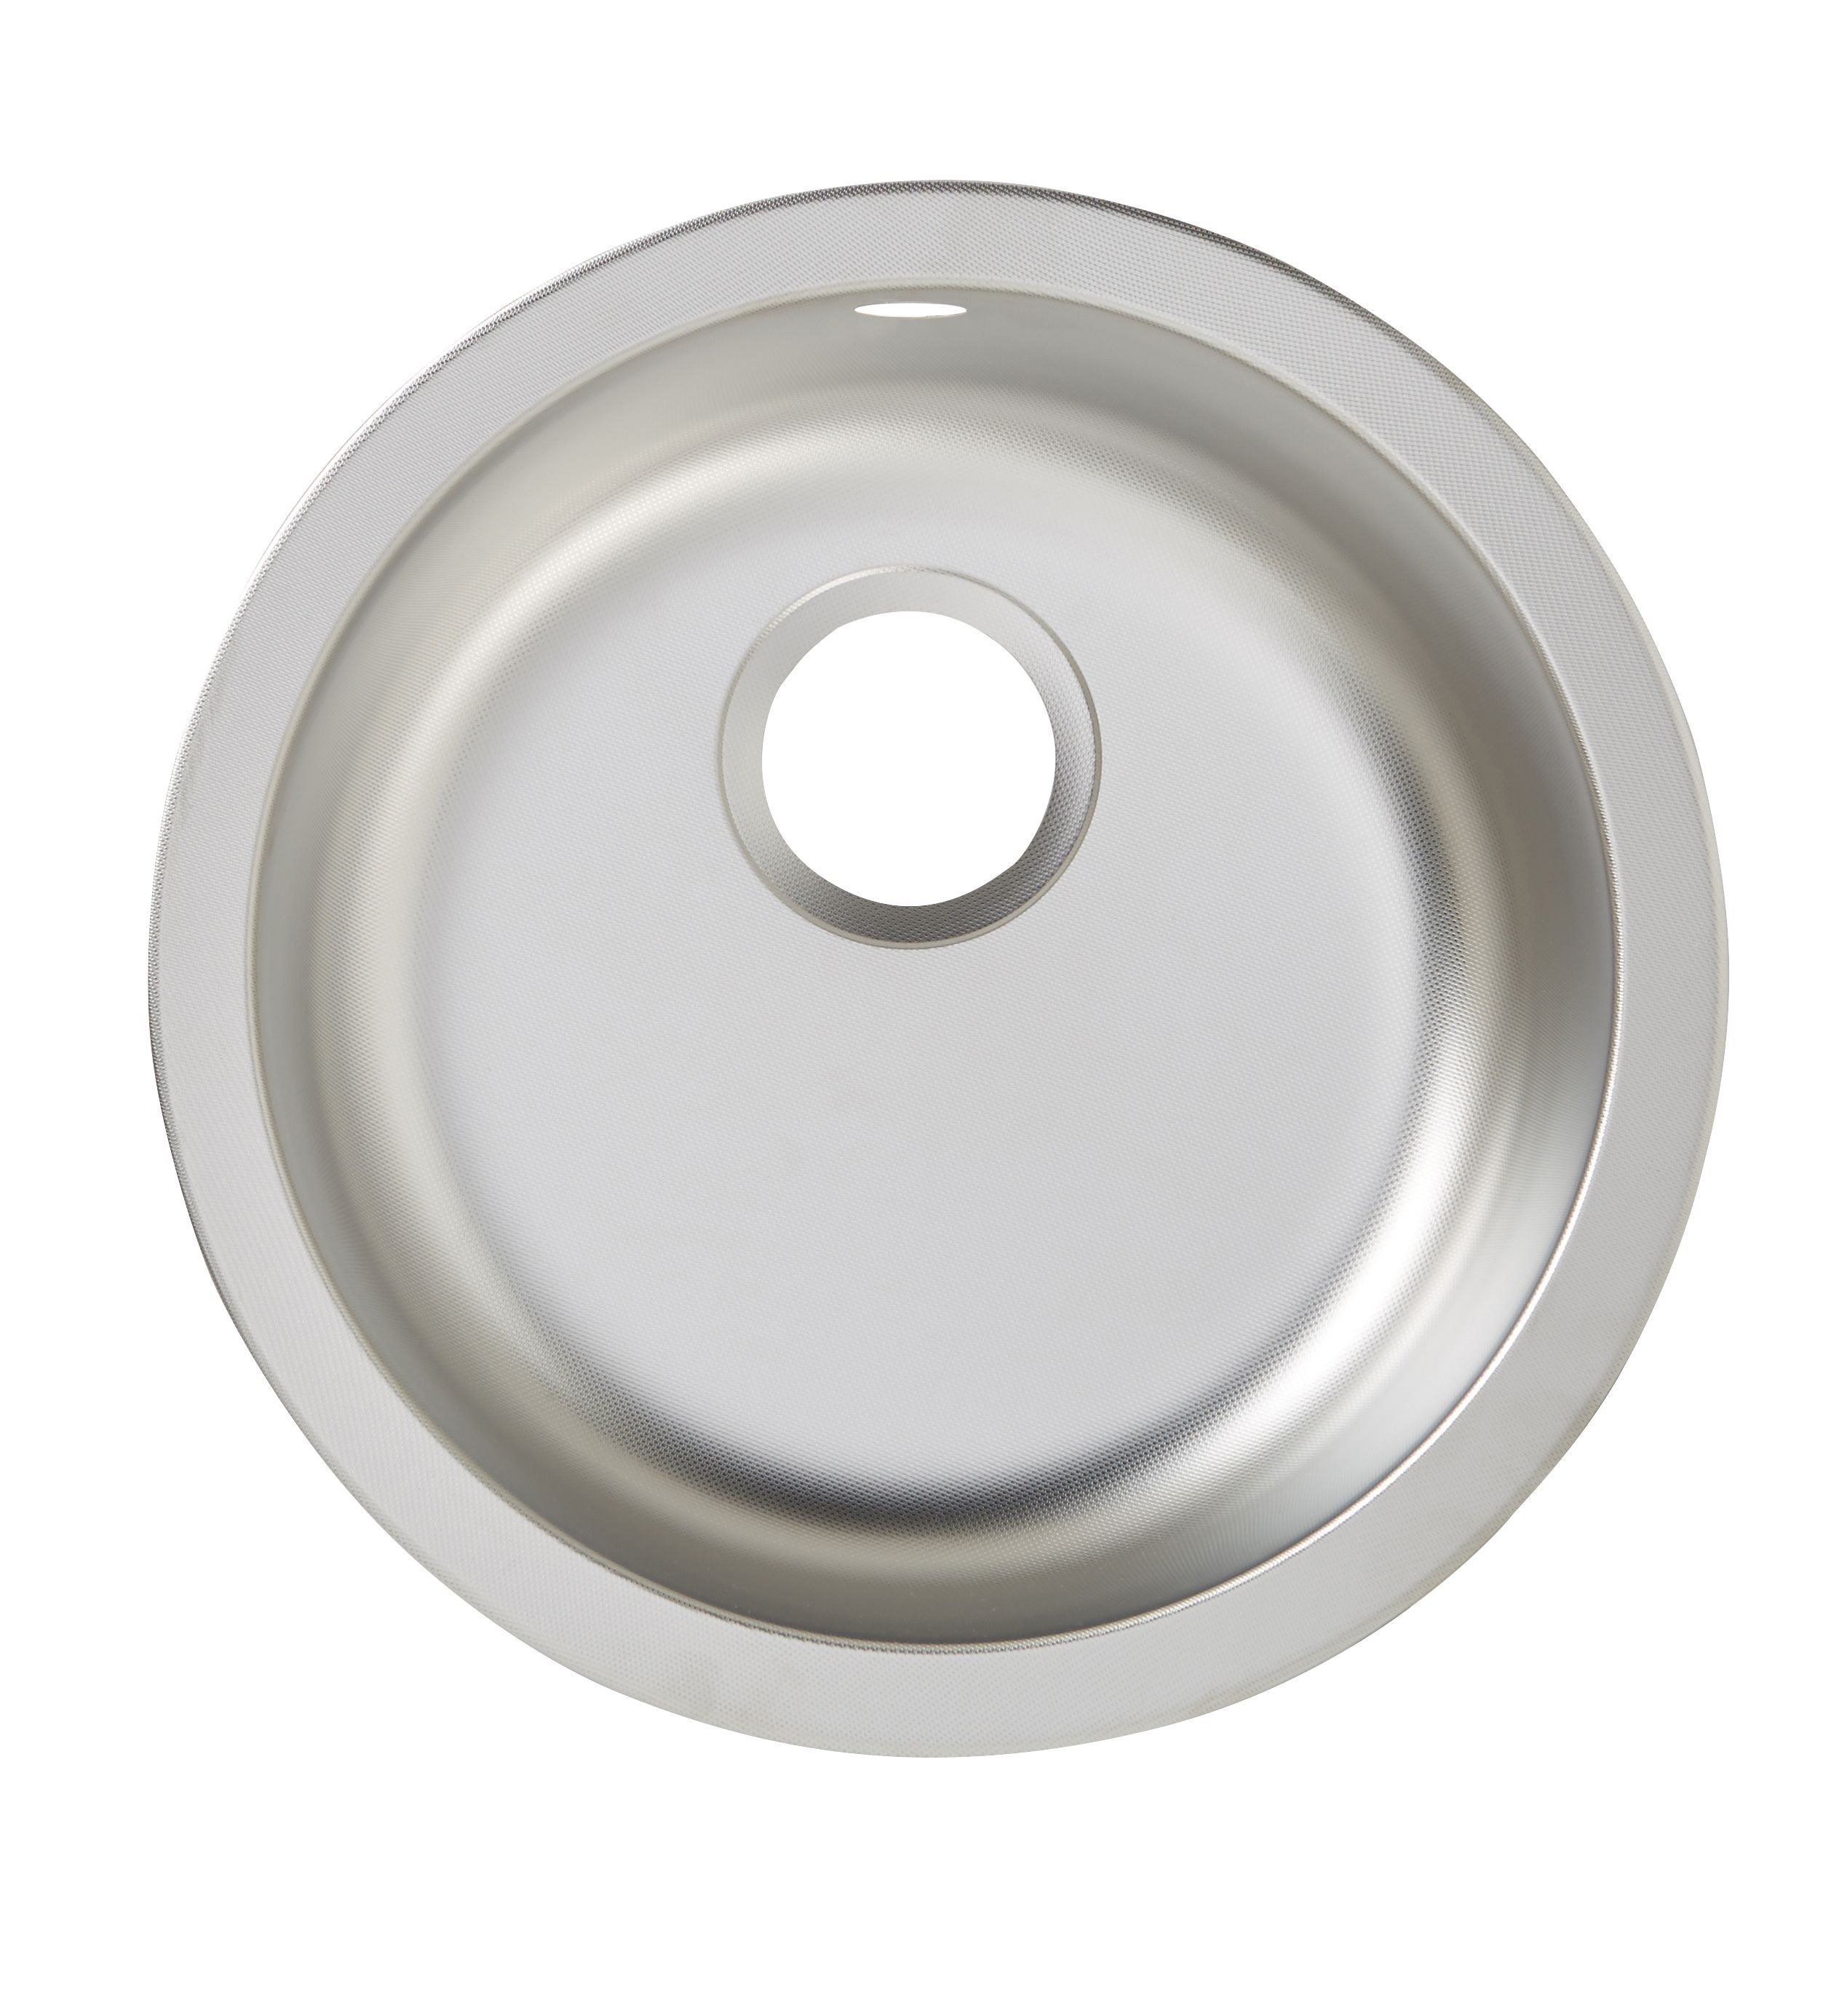 Cooke And Lewis Kitchen Sinks Diy at bq cooke lewis hurston 1 bowl linen finish stainless steel round sink workwithnaturefo